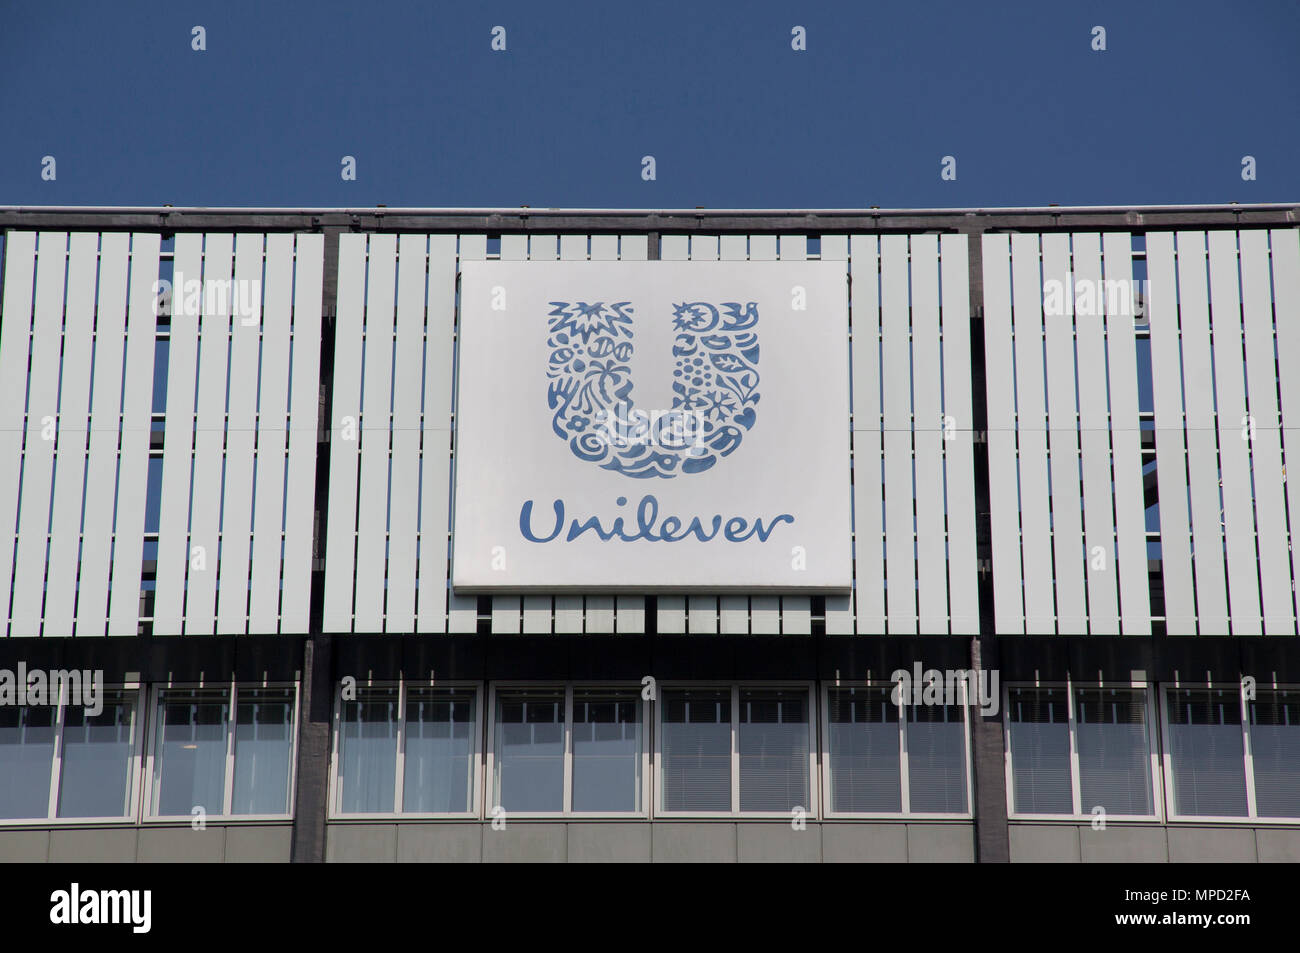 Rotterdam , Netherlands-august 13, 2015: Unilever is a multinational company in the field of food, personal care and cleaning products. - Stock Image